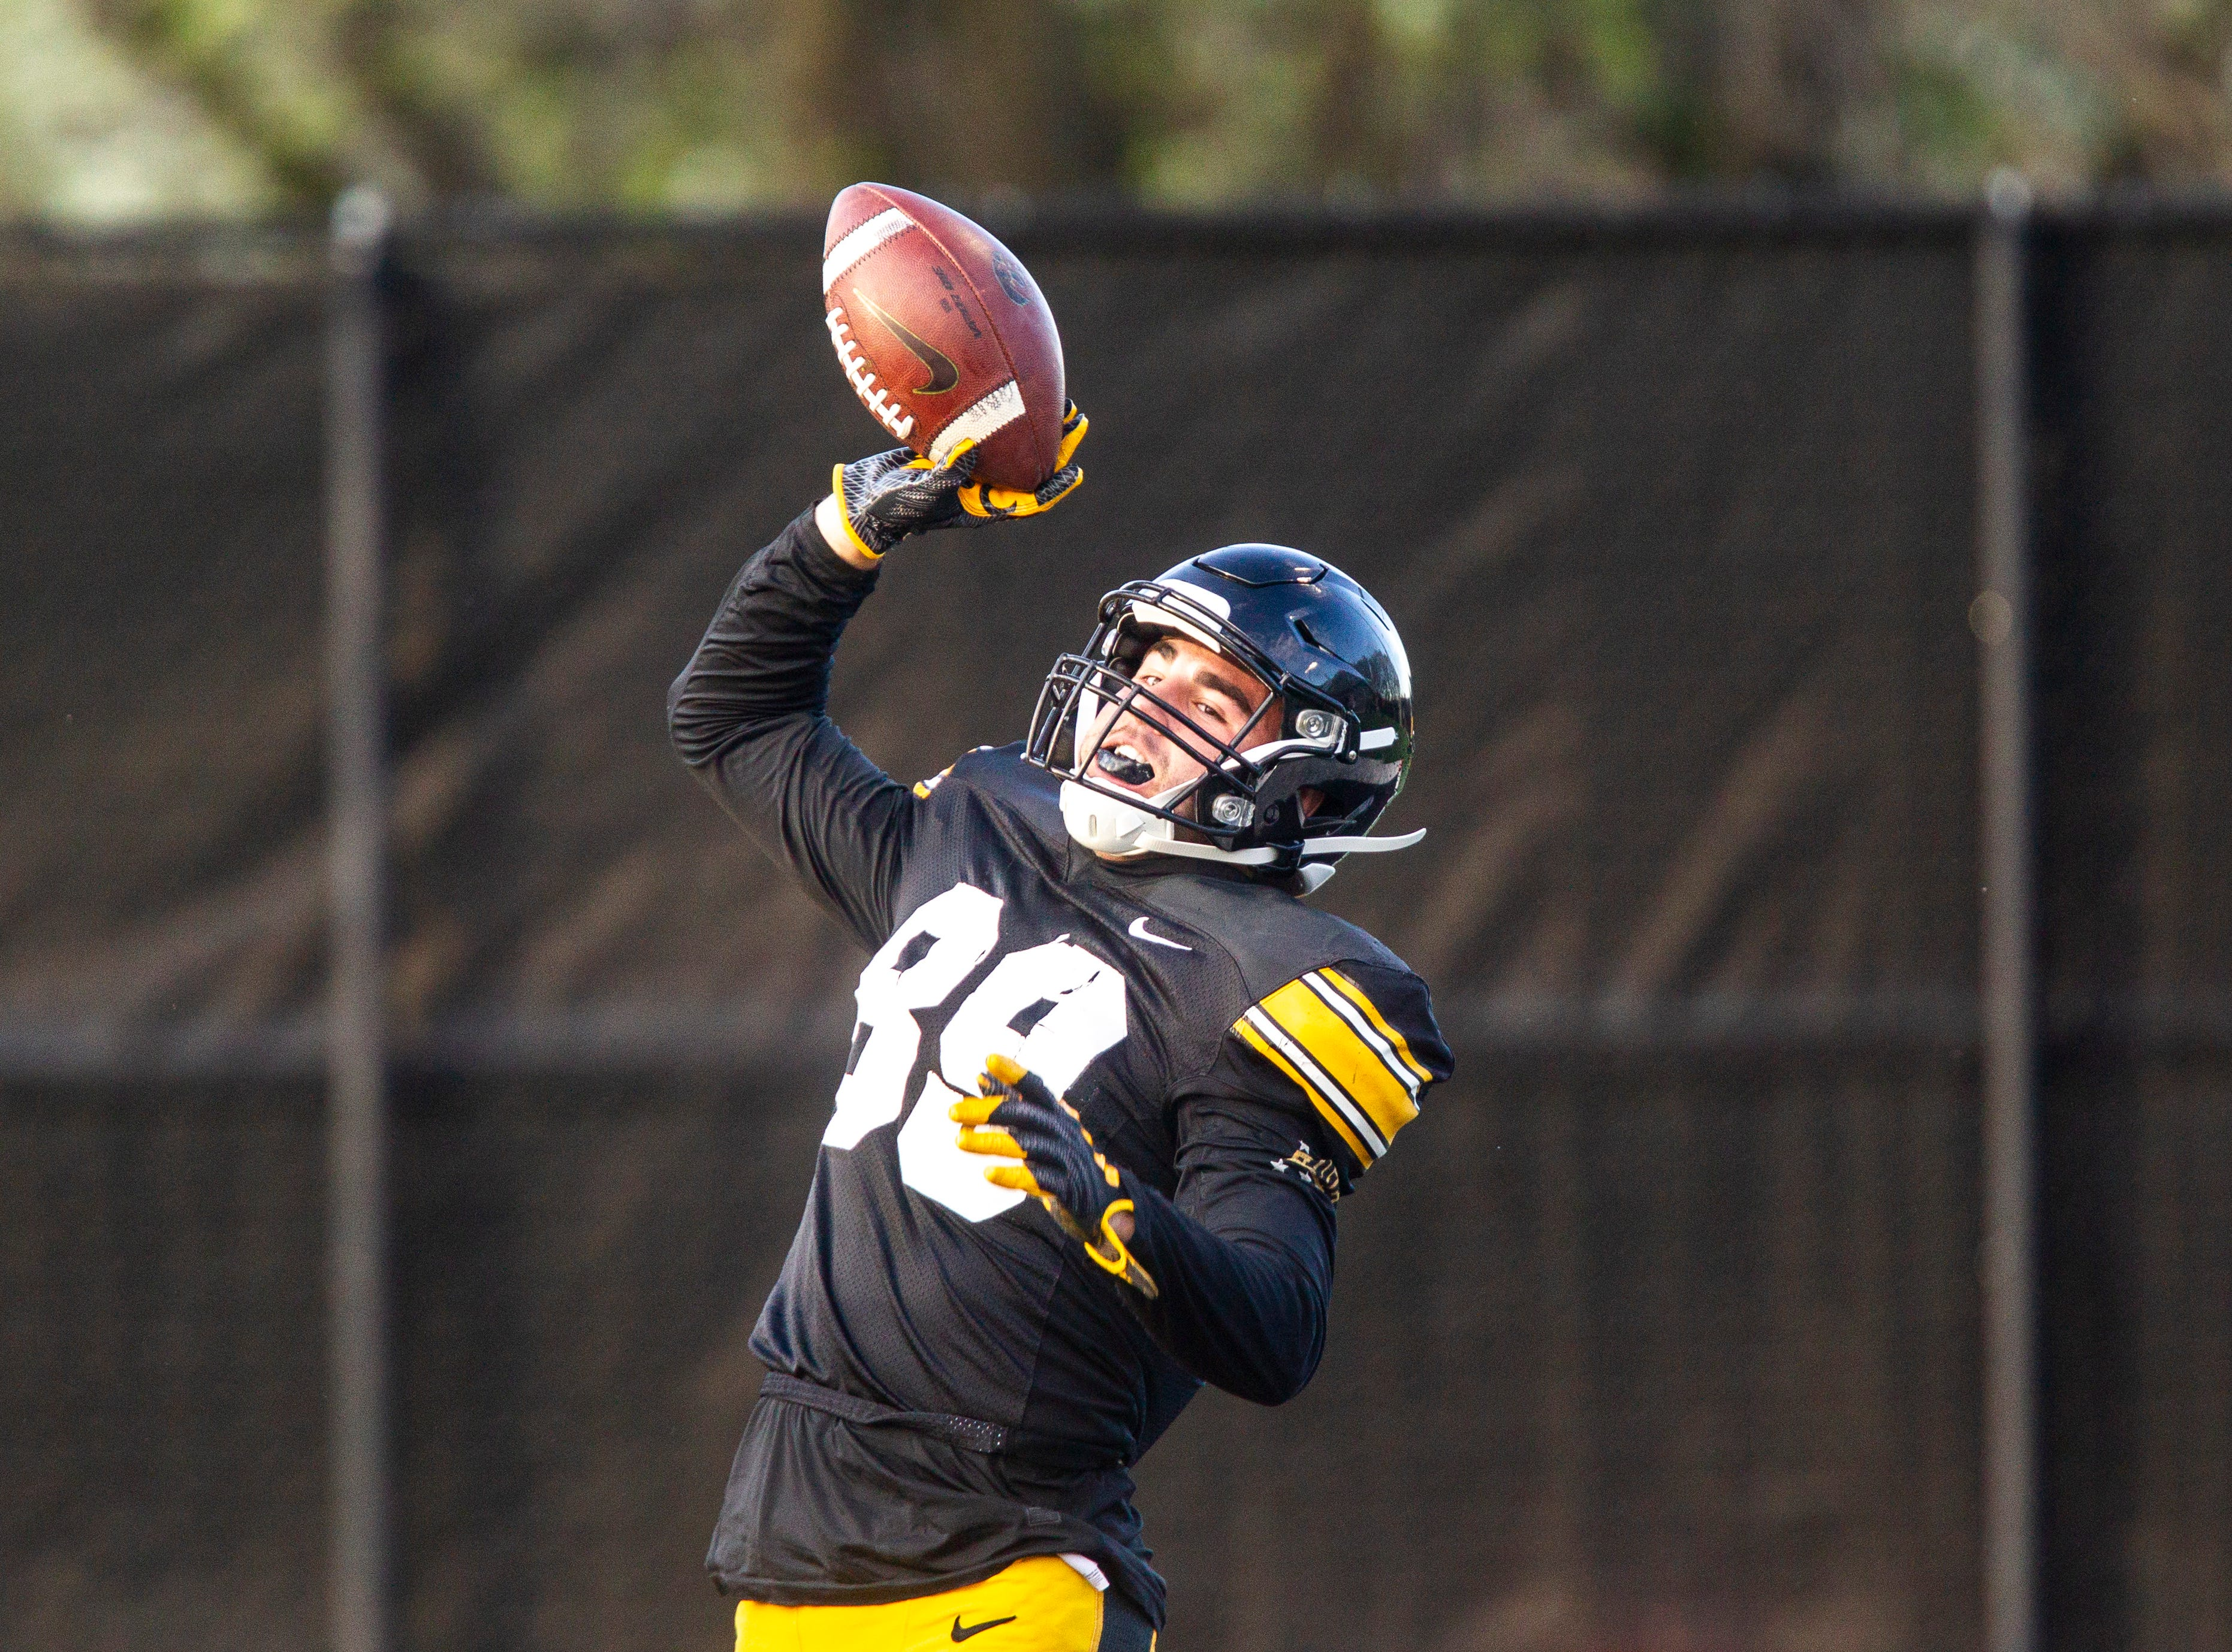 Iowa wide receiver Nico Ragaini (89) celebrates in the end zone after catching a pass on the final play during the final spring football practice, Friday, April 26, 2019, at the University of Iowa outdoor practice facility in Iowa City, Iowa.